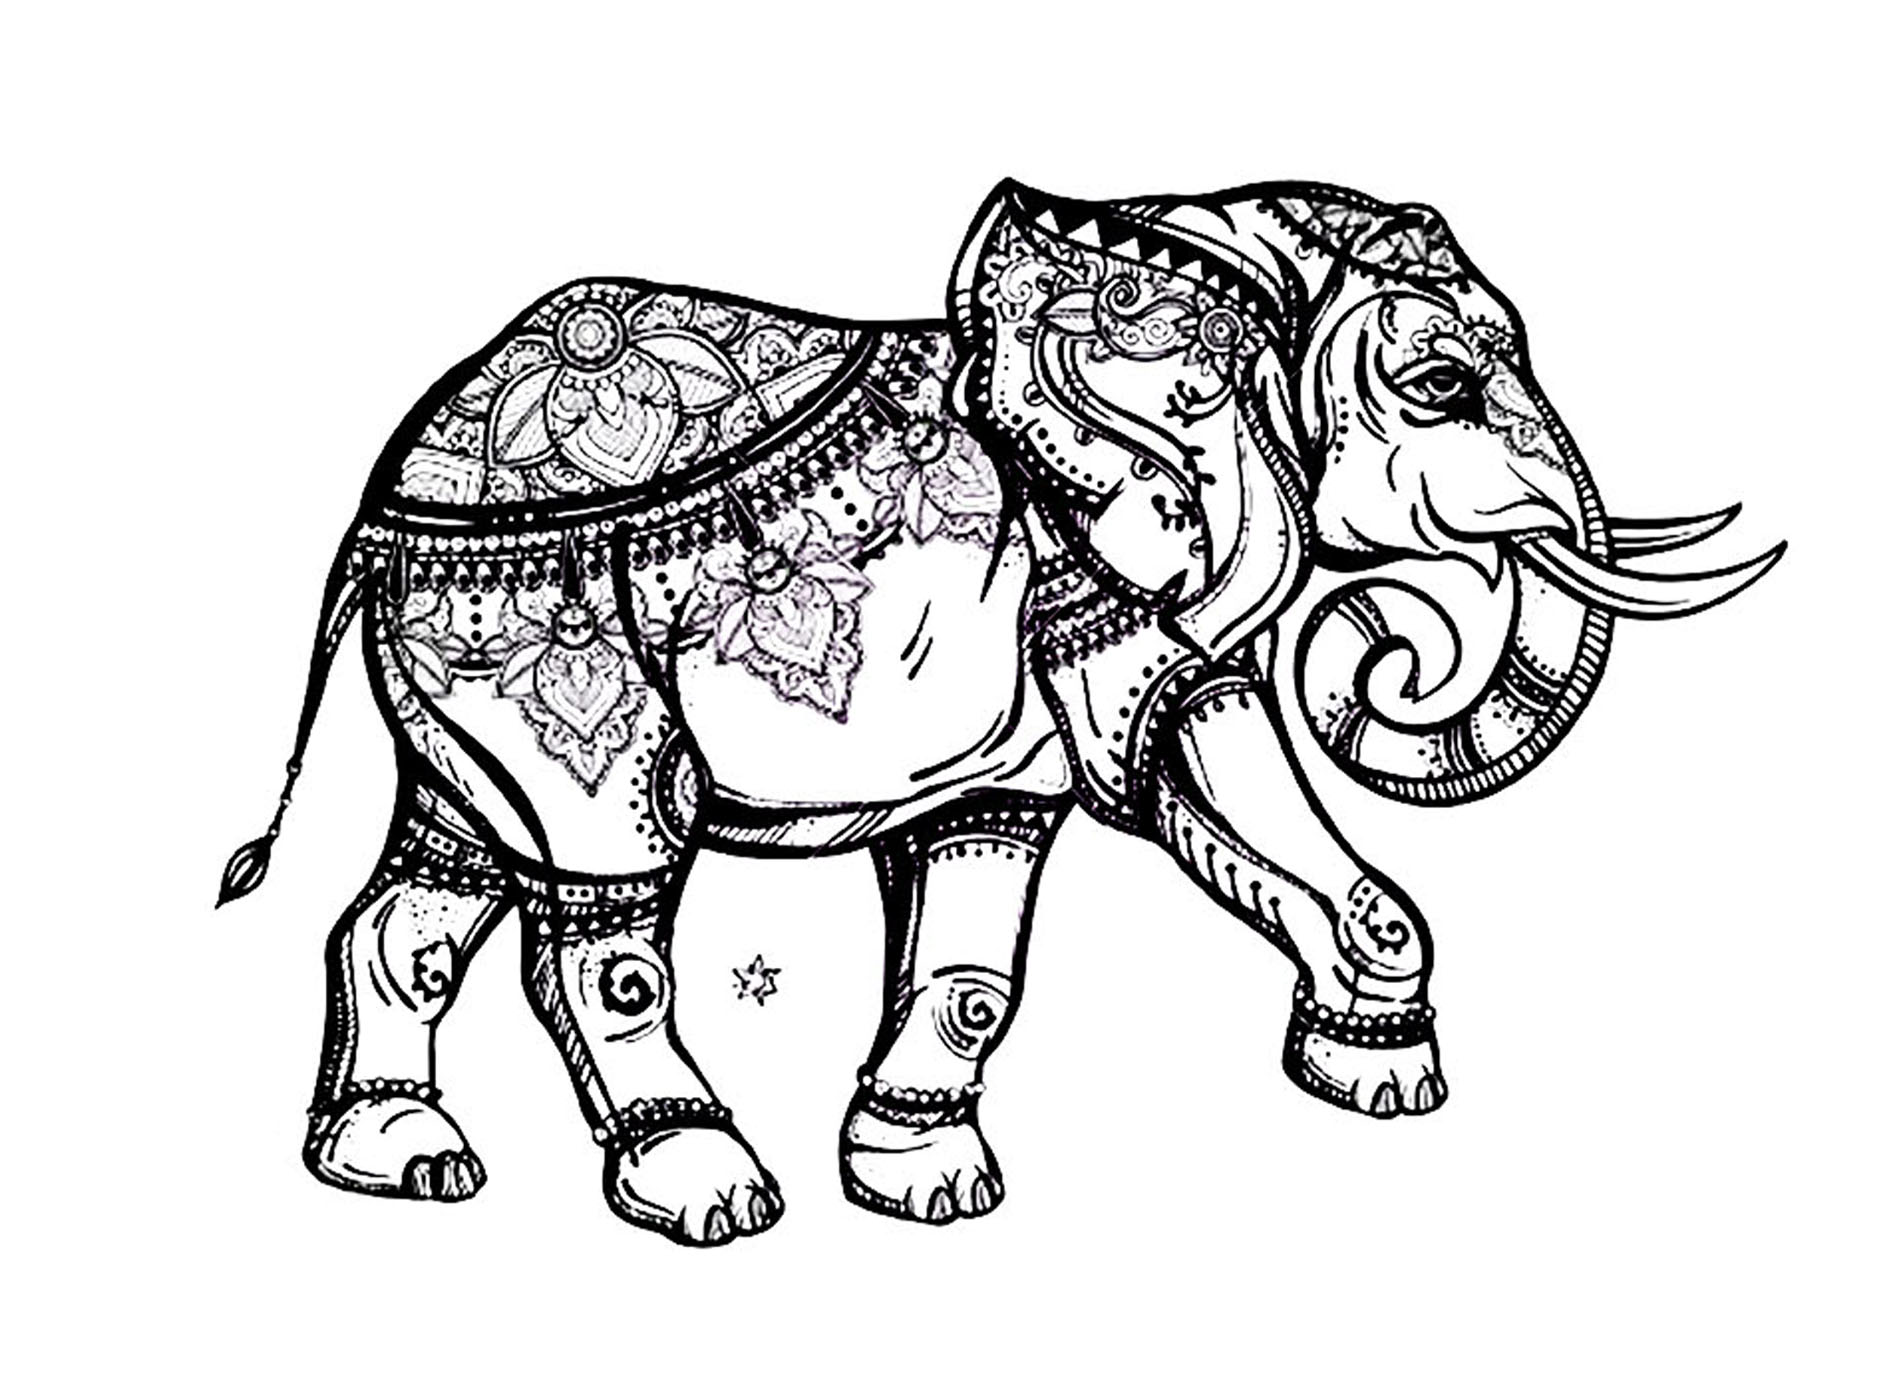 Elegant elephant - Elephants Adult Coloring Pages